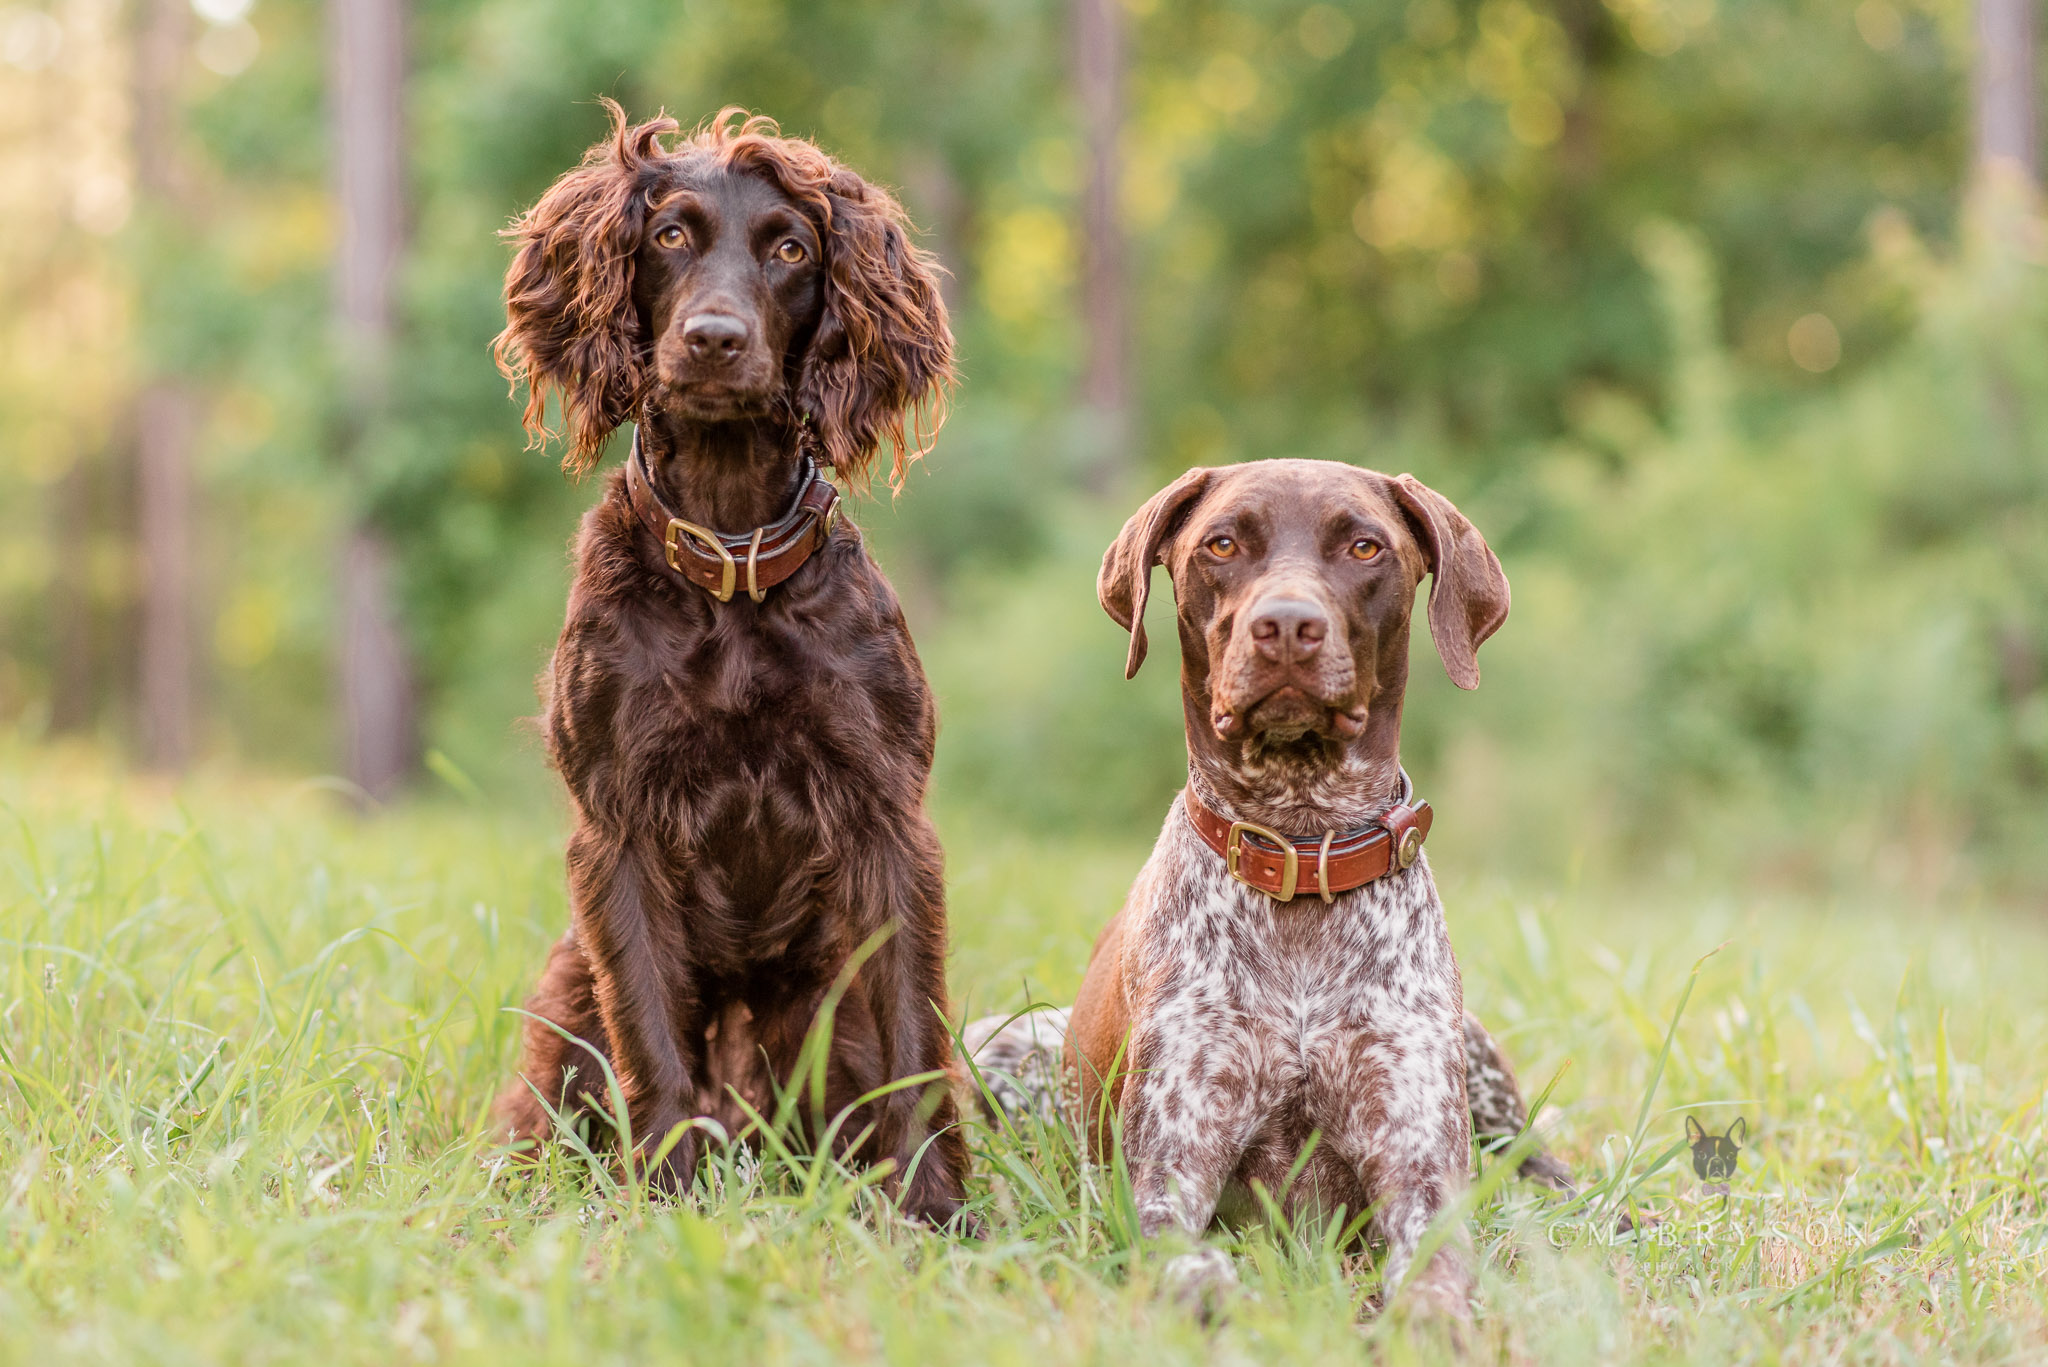 A pet photographer can help you get images of your dogs together during a dog photo shoot in Madison, Georgia.